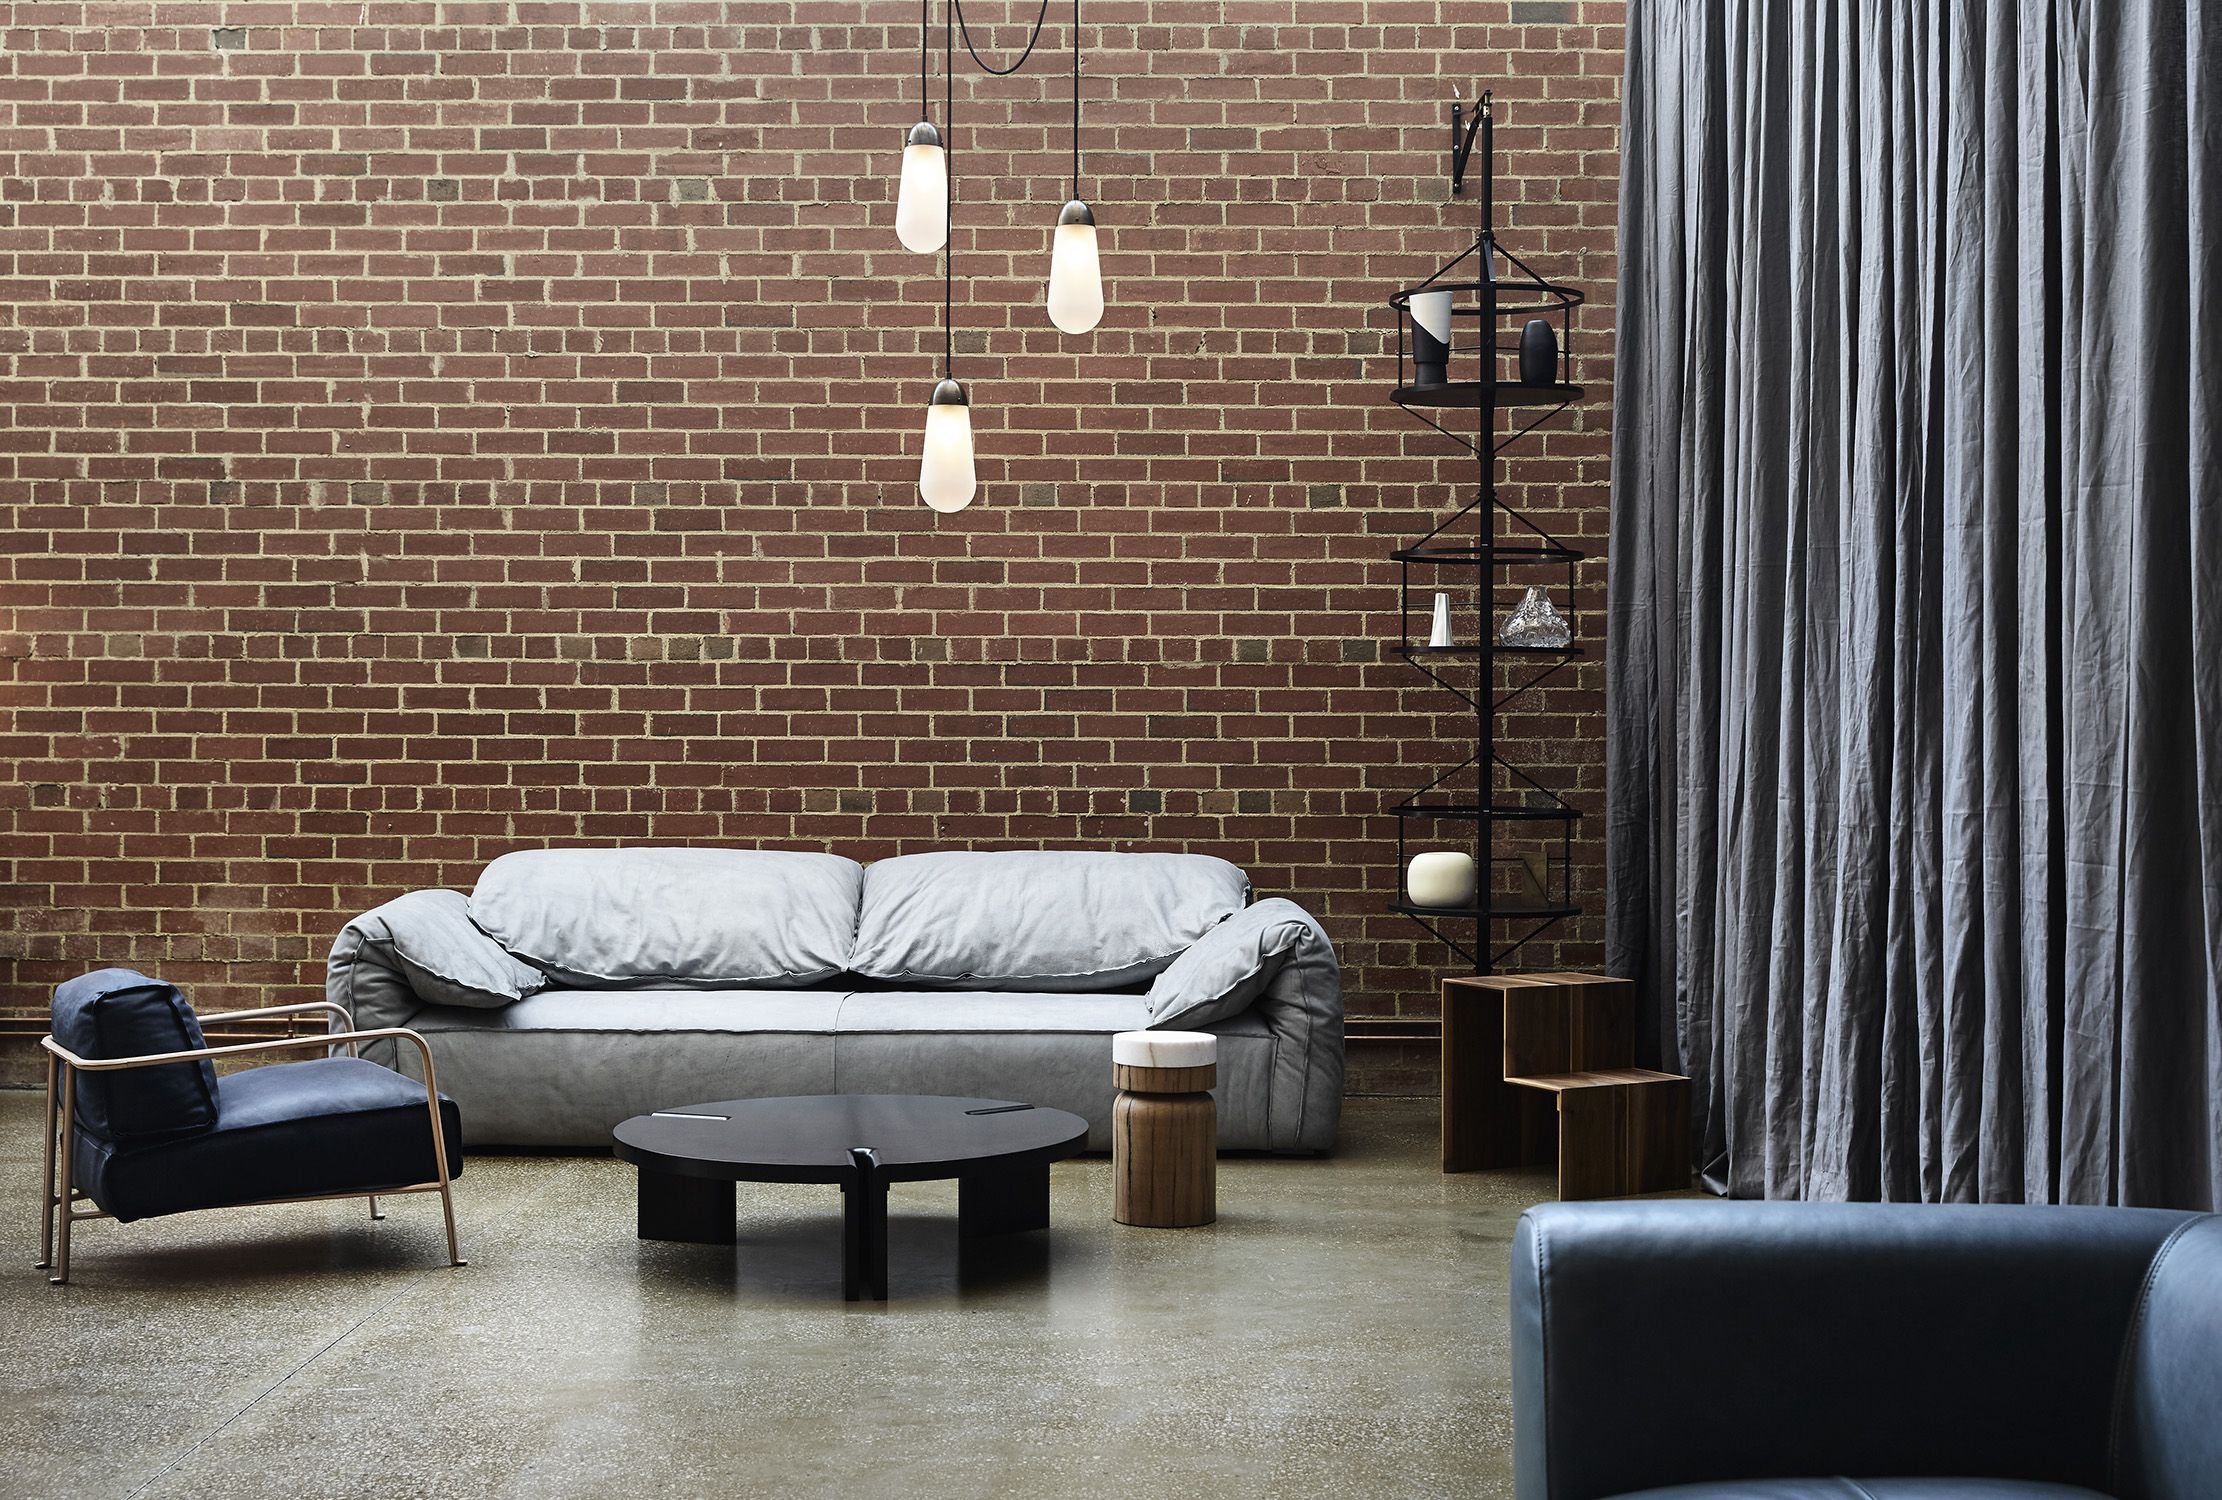 Baxter Sofa Hong Kong Criteria Showroom And Gallery Melbourne Casablanca Sofa By Paola